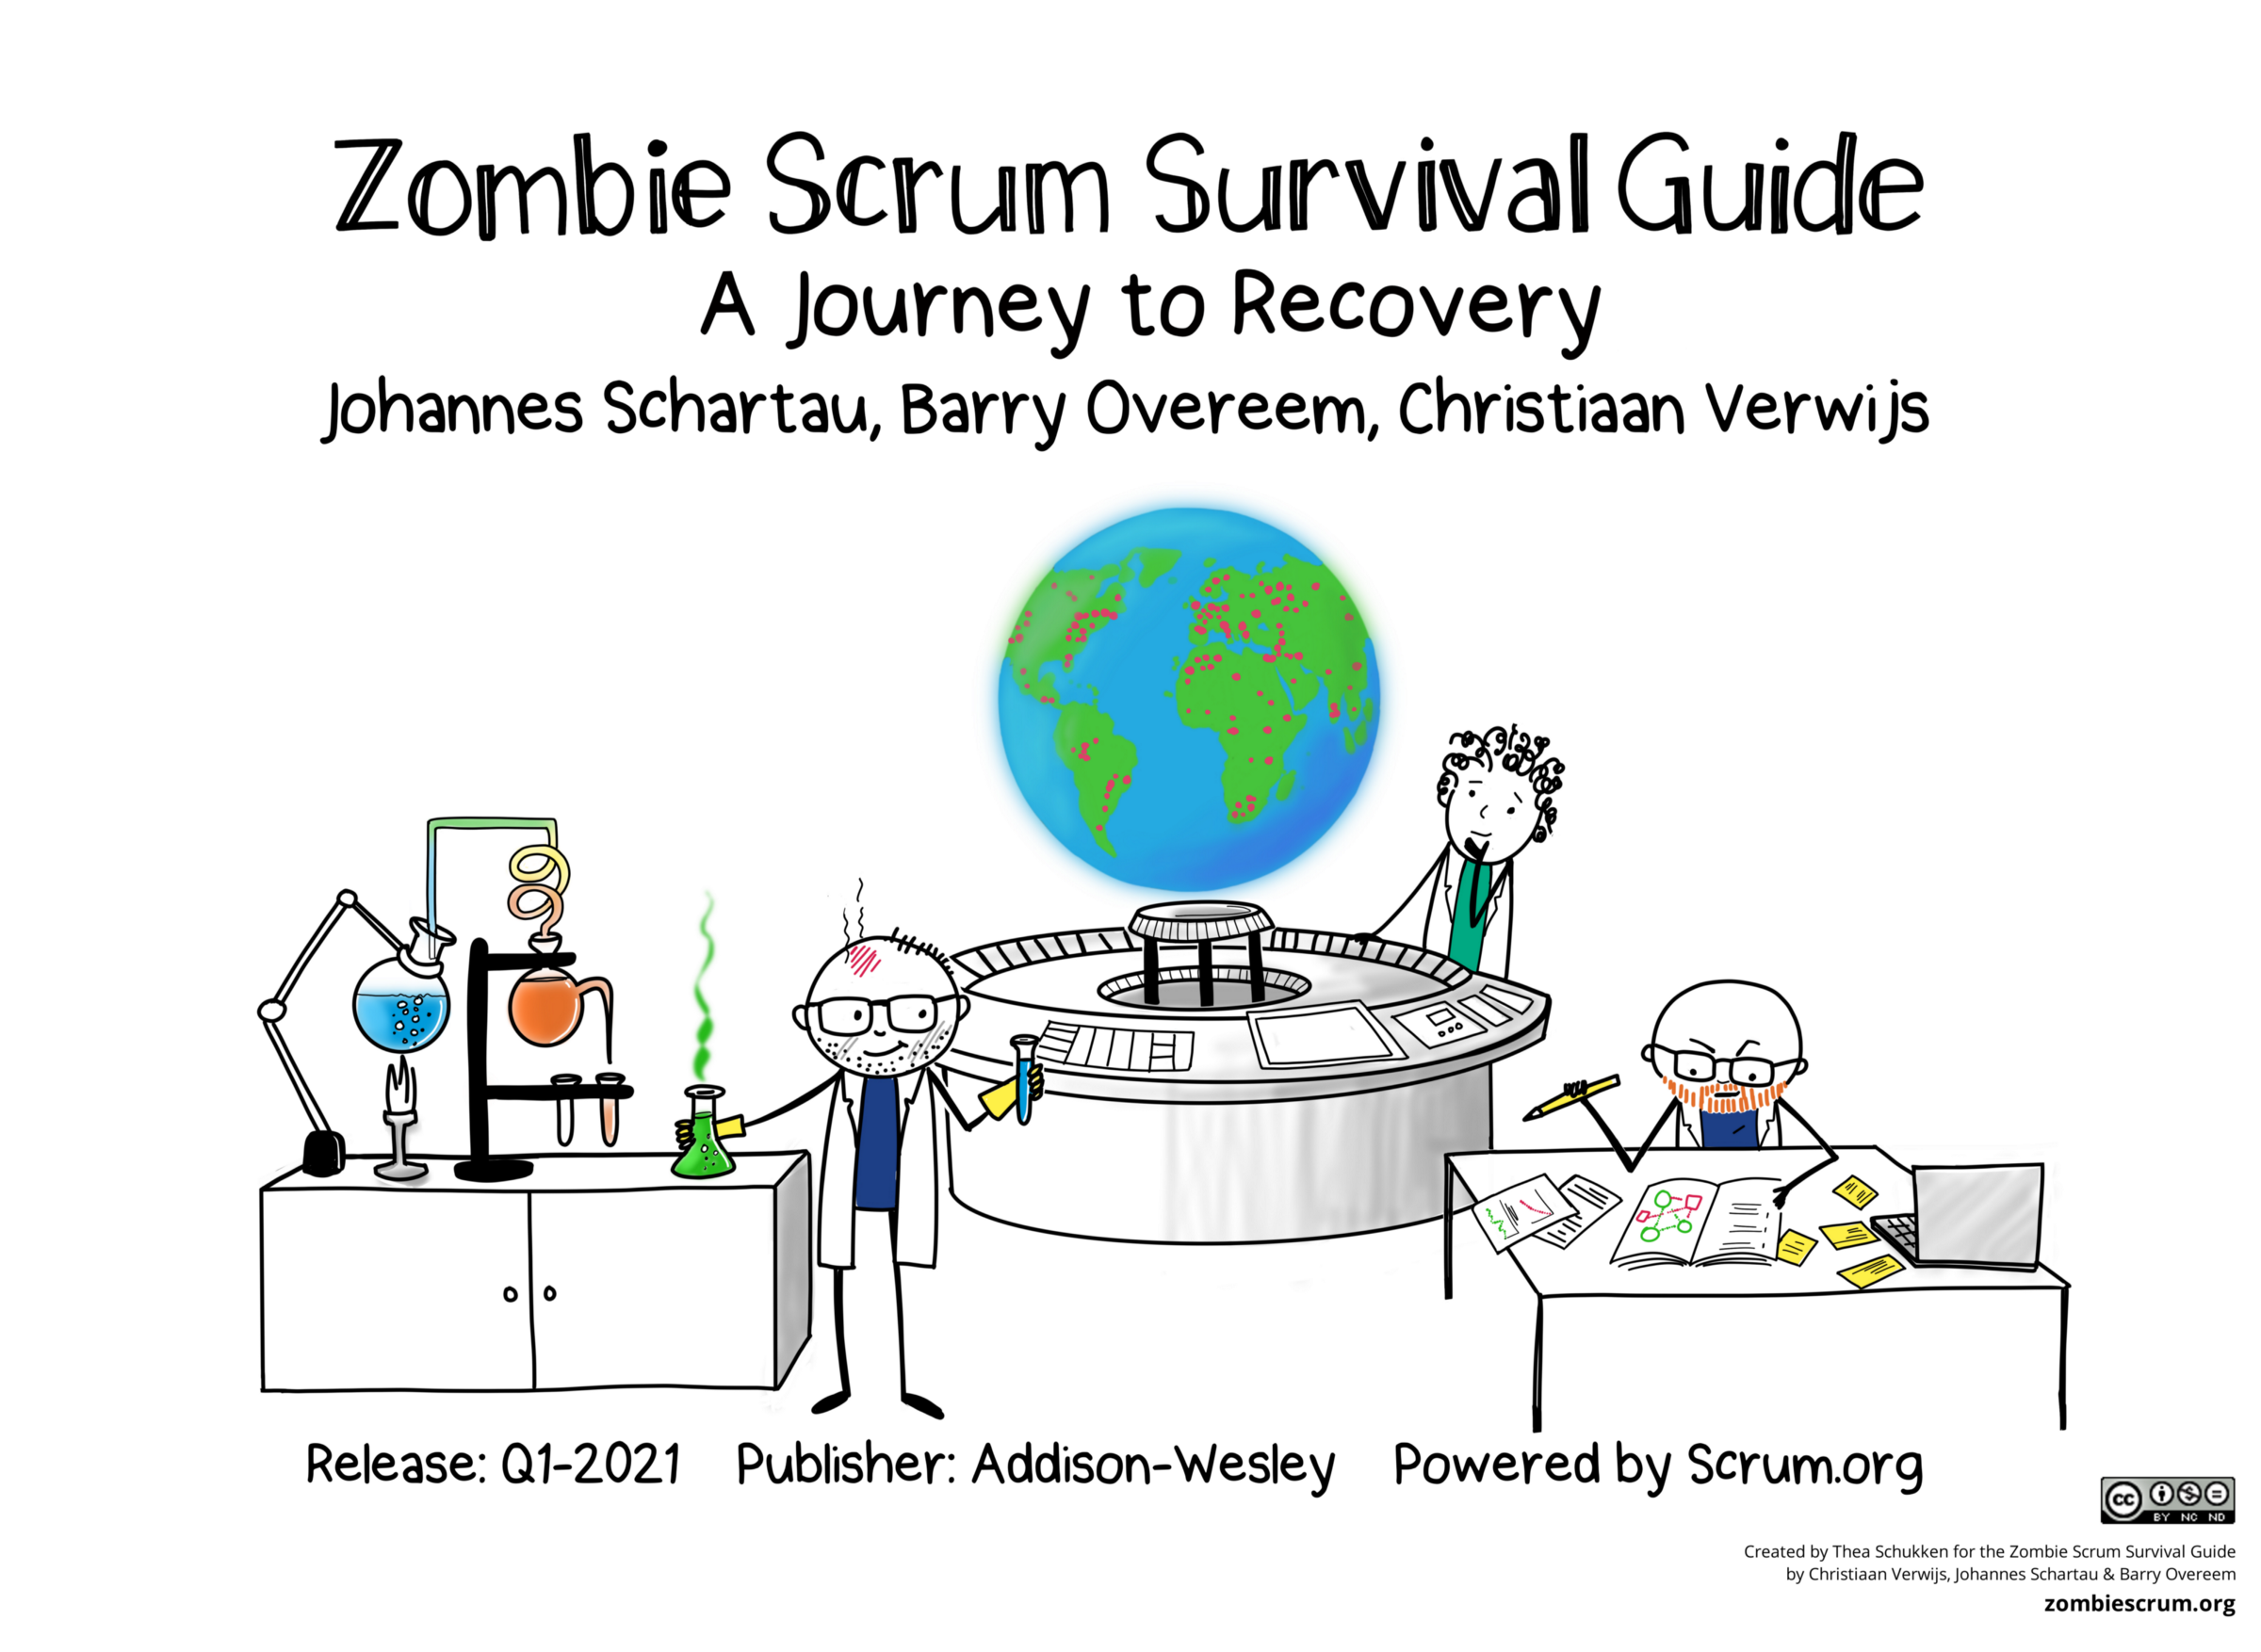 The Zombie Scrum Research Team